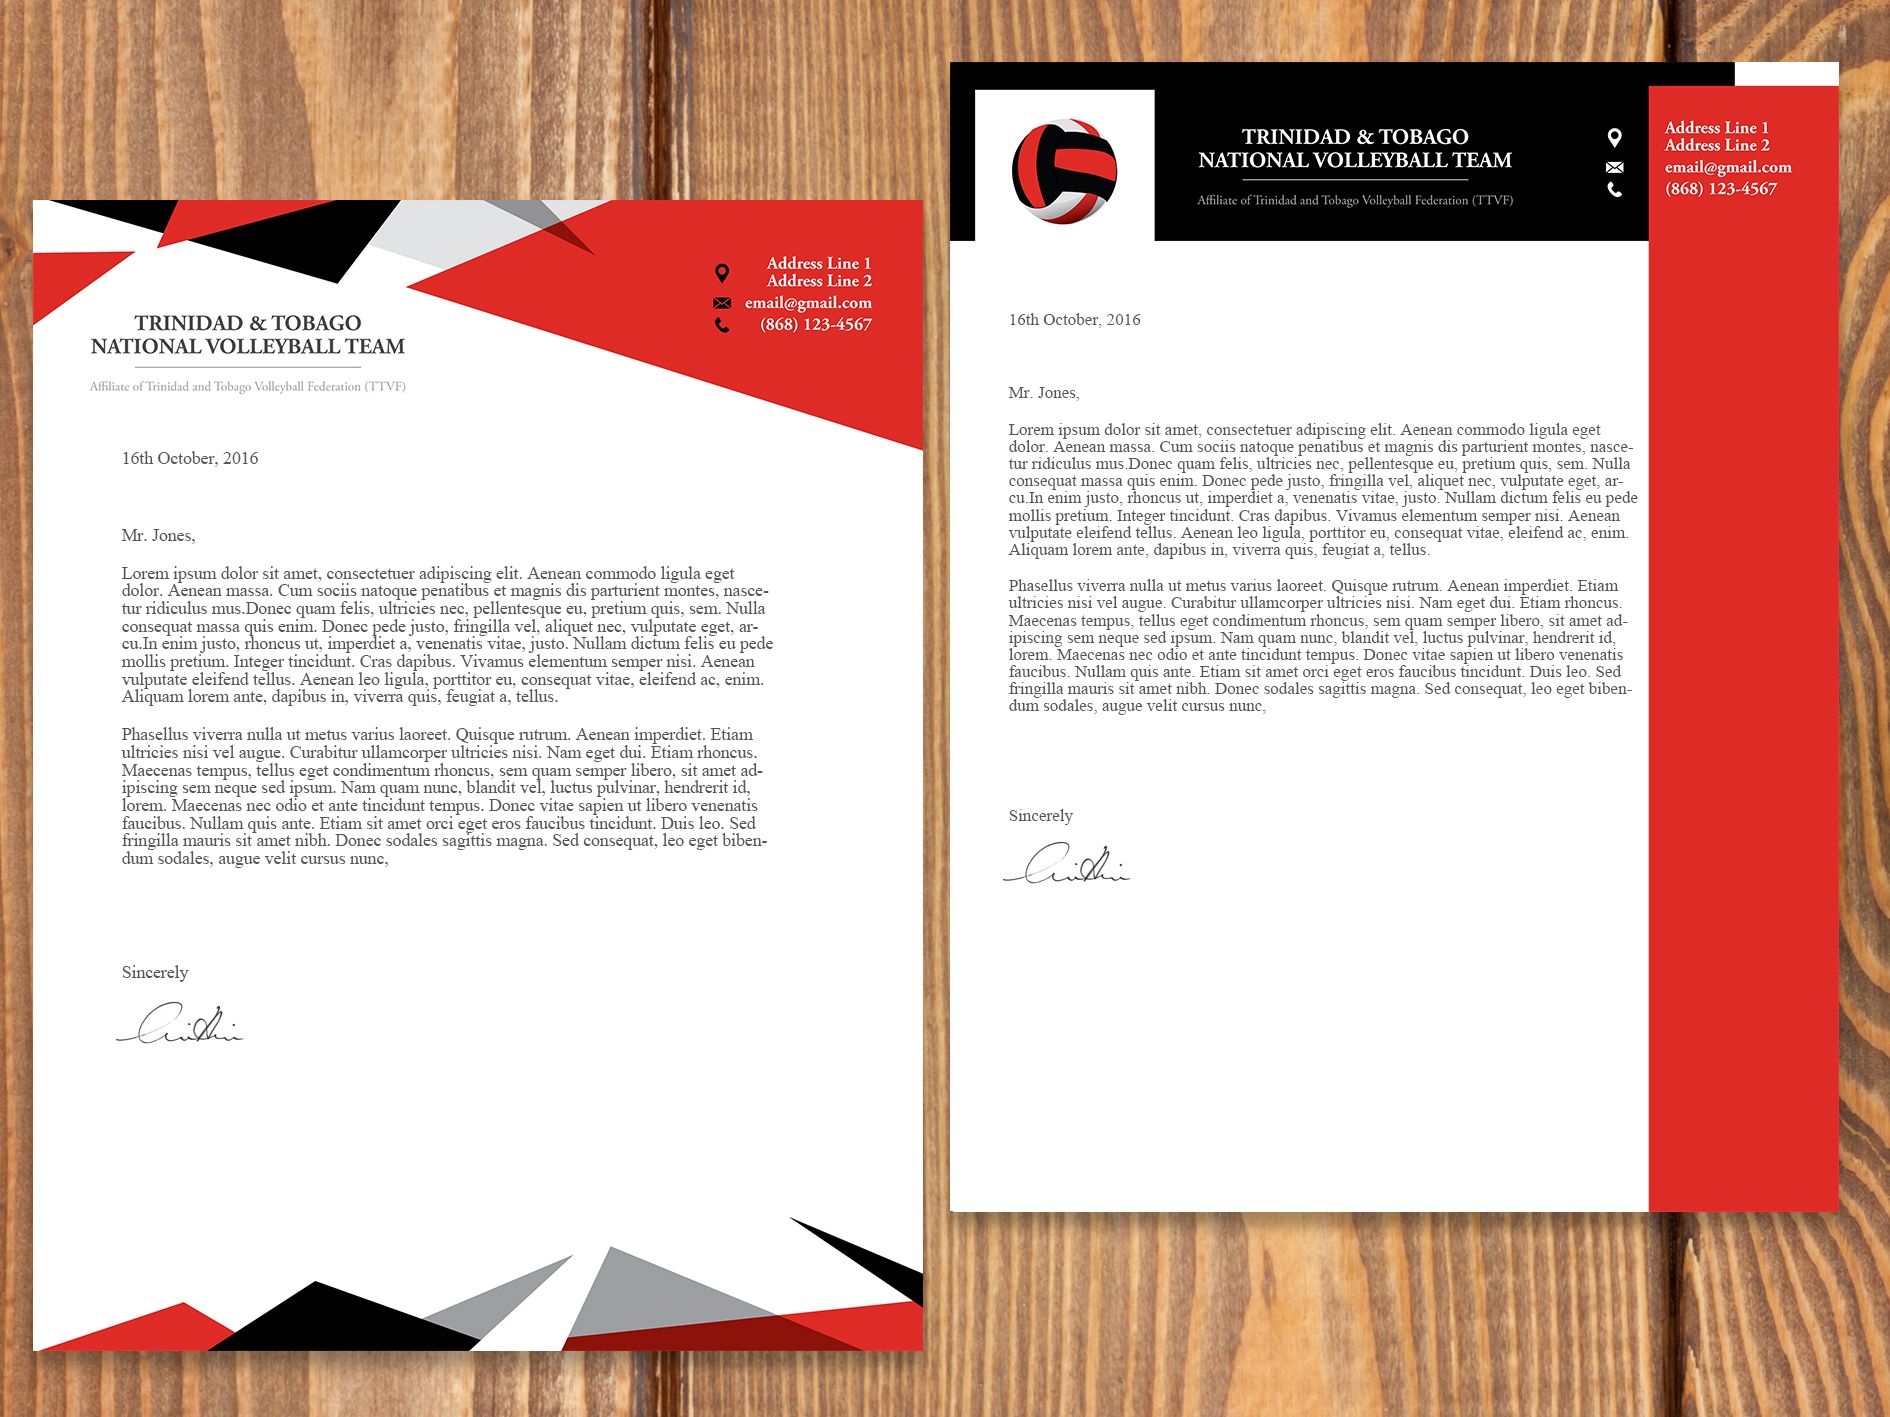 T&T Volleyball Team Letterhead Design